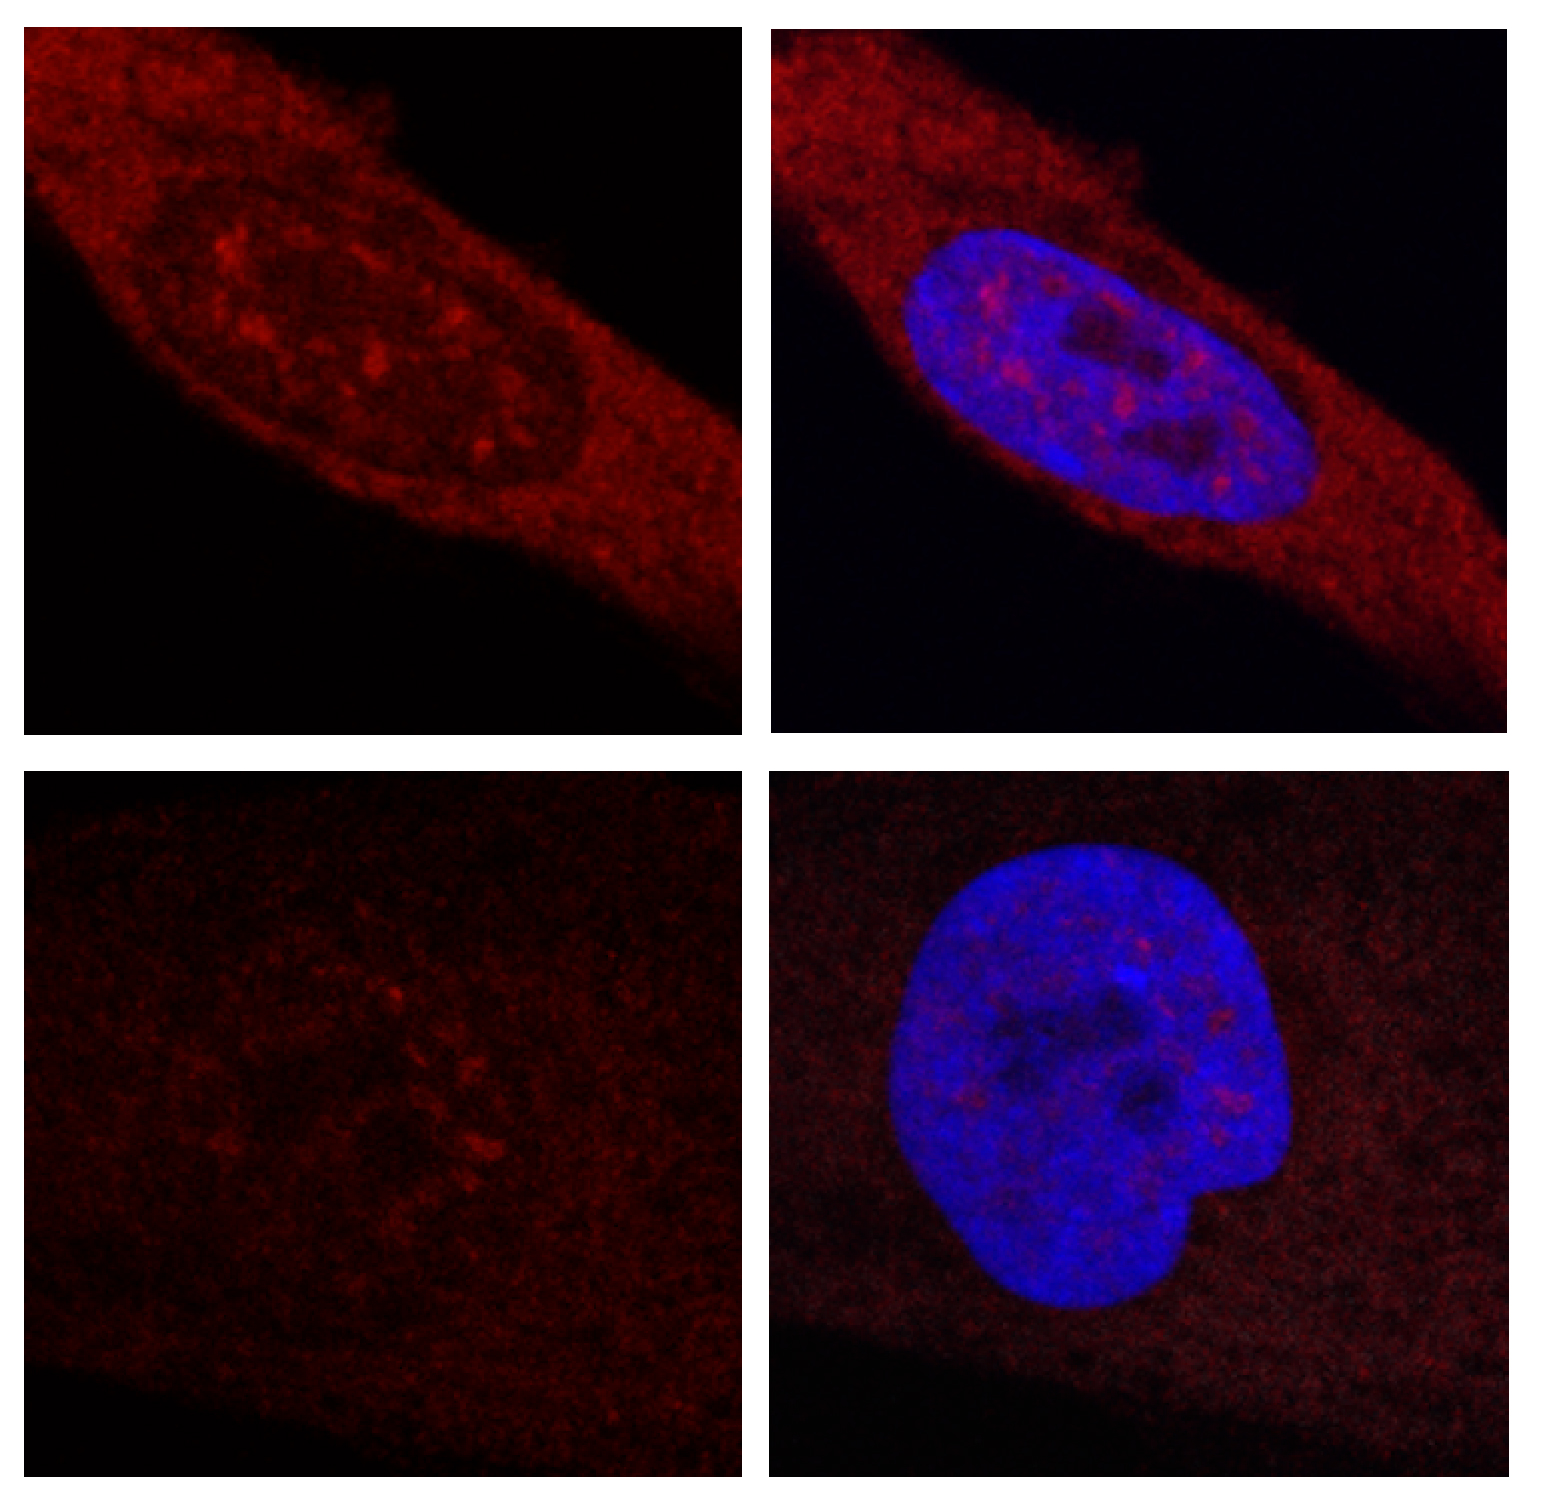 10.11.2016 CRG_Article JCI_Cells expressing huntingtin.jpg